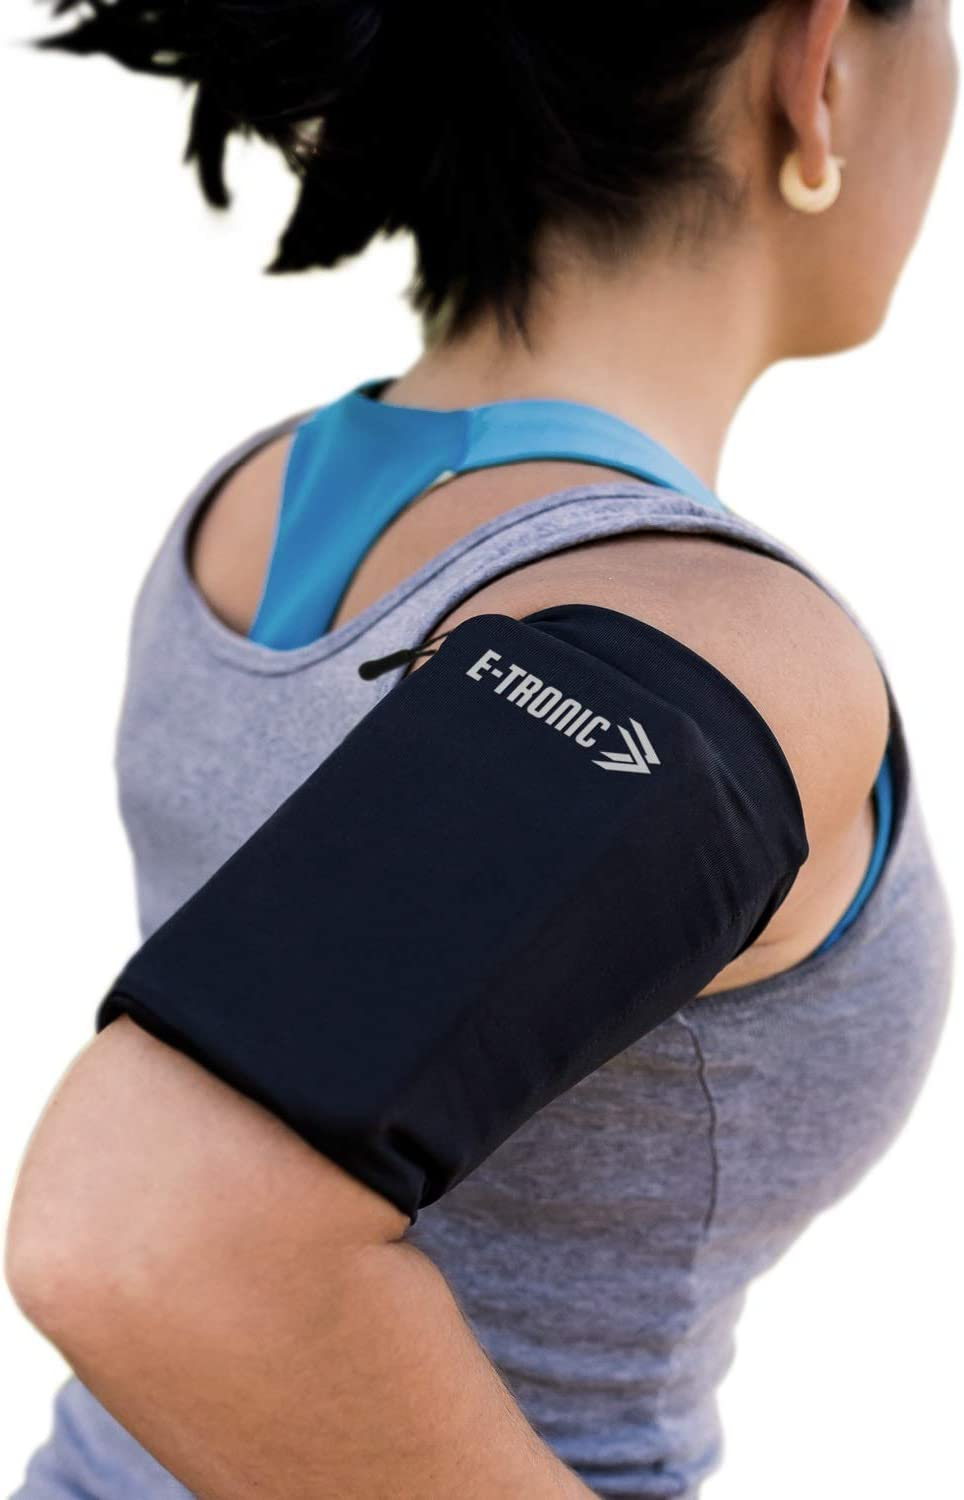 Phone Armband Sleeve: Running Sports Arm Band Strap Holder Pouch Case for Exercise Workout Compatible with iPhone 5S SE 6 6S 7 8 X Plus iPod Android Samsung Galaxy S5 S6 S7 S11 Black XL